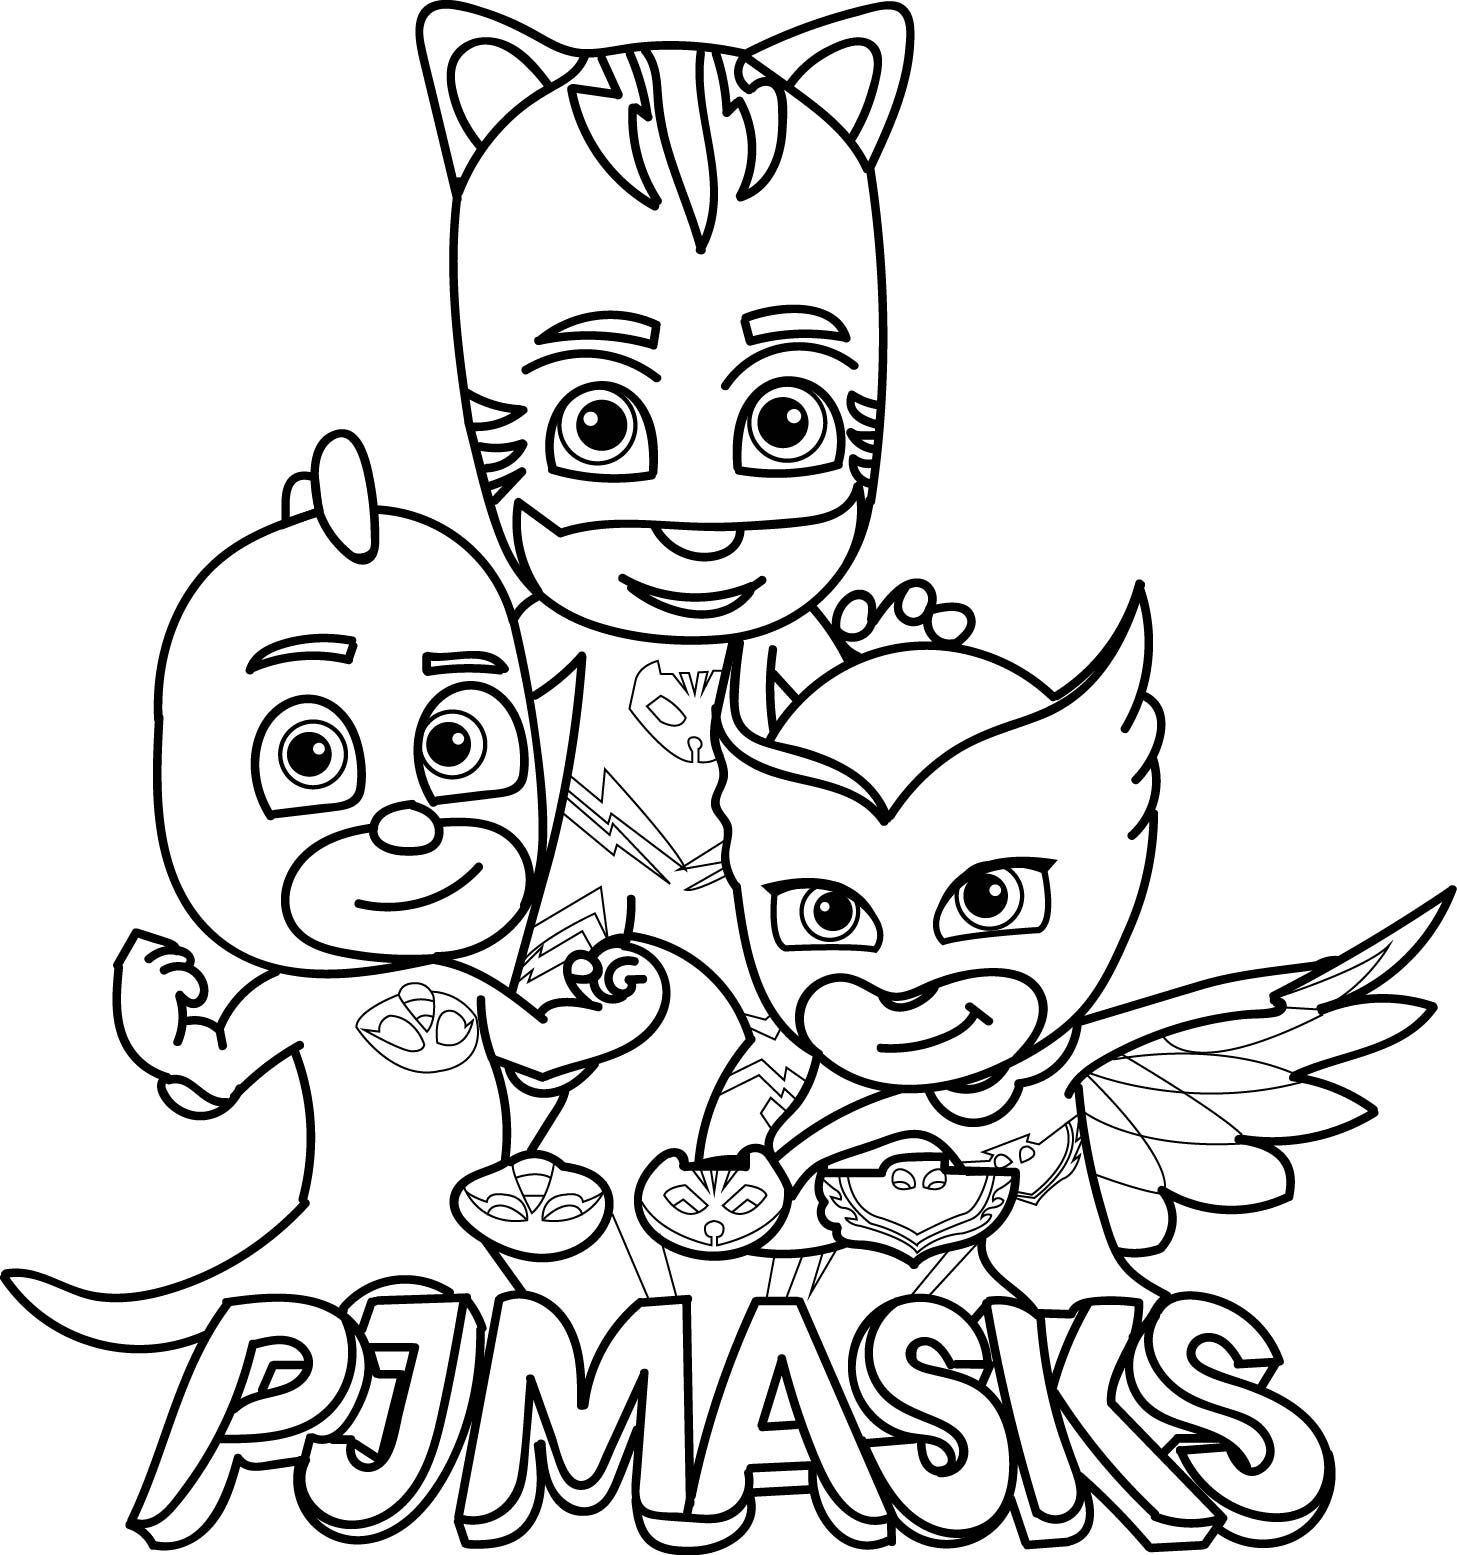 pj masks coloring pages printable Pj Masks Coloring Page | Coloring pages for the kids in 2019 | Pj  pj masks coloring pages printable